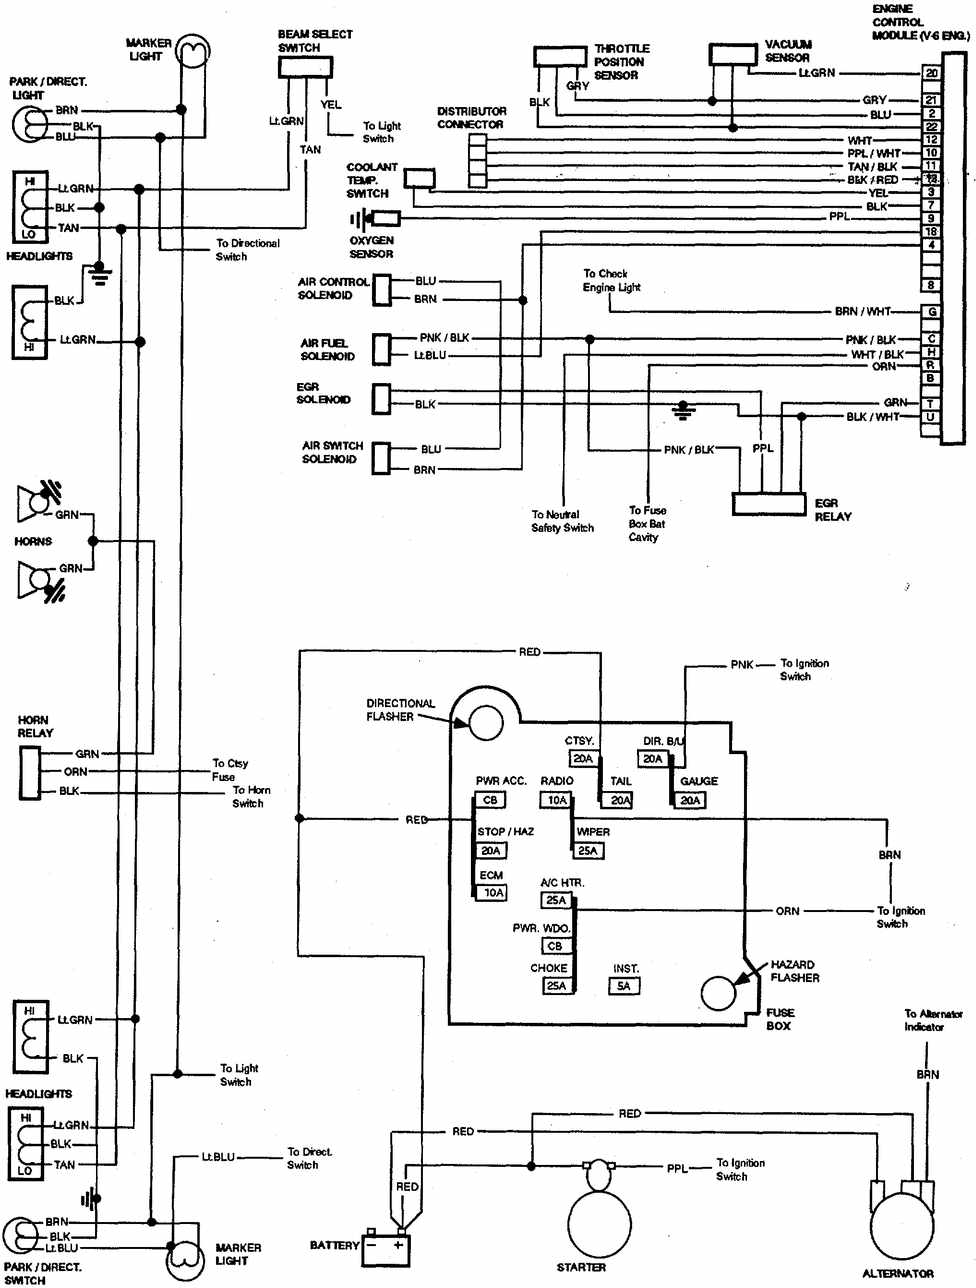 1992 s10 wiper motor wiring diagram